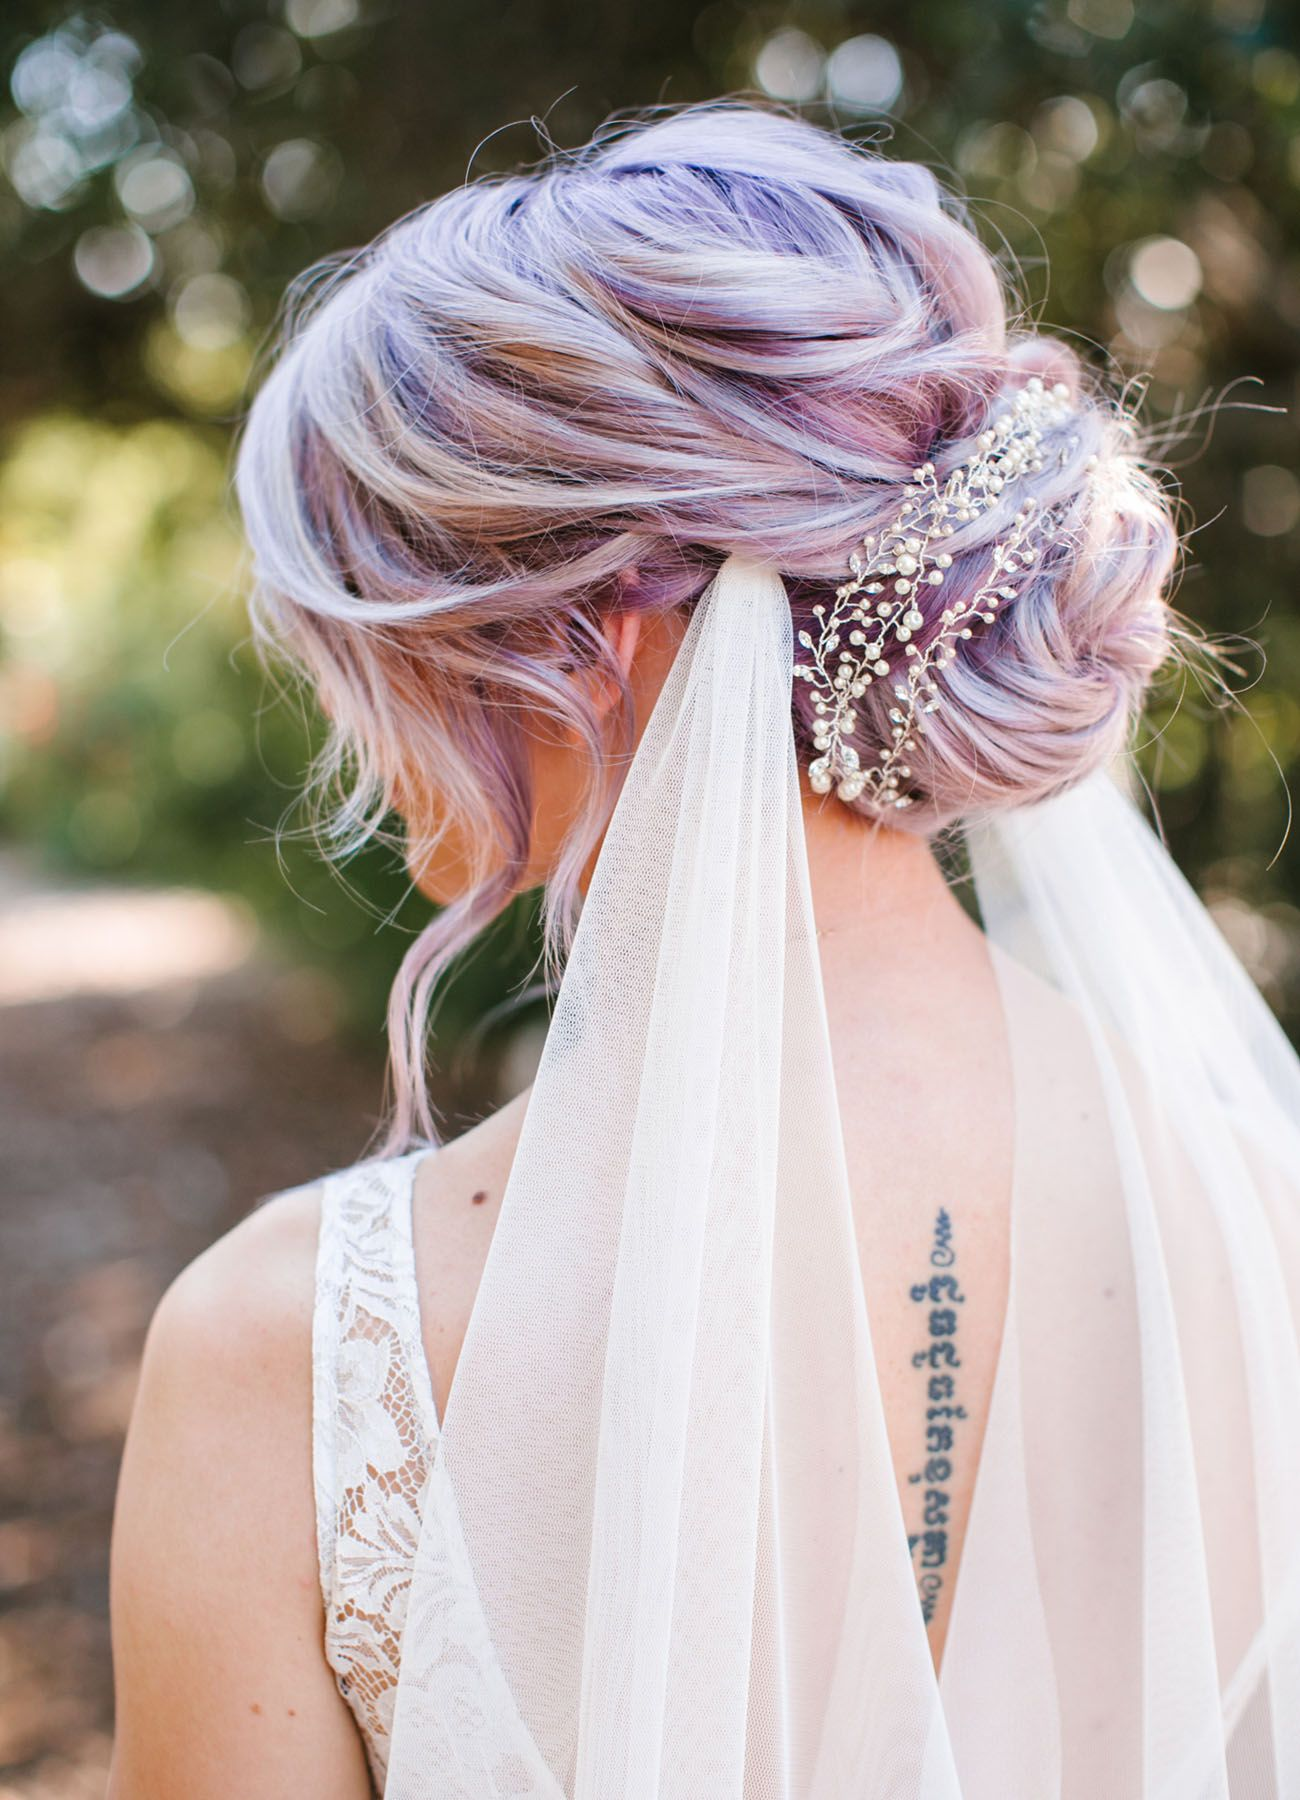 Trending Now Boho Chic Messy Bun Wedding Hairstyles Best